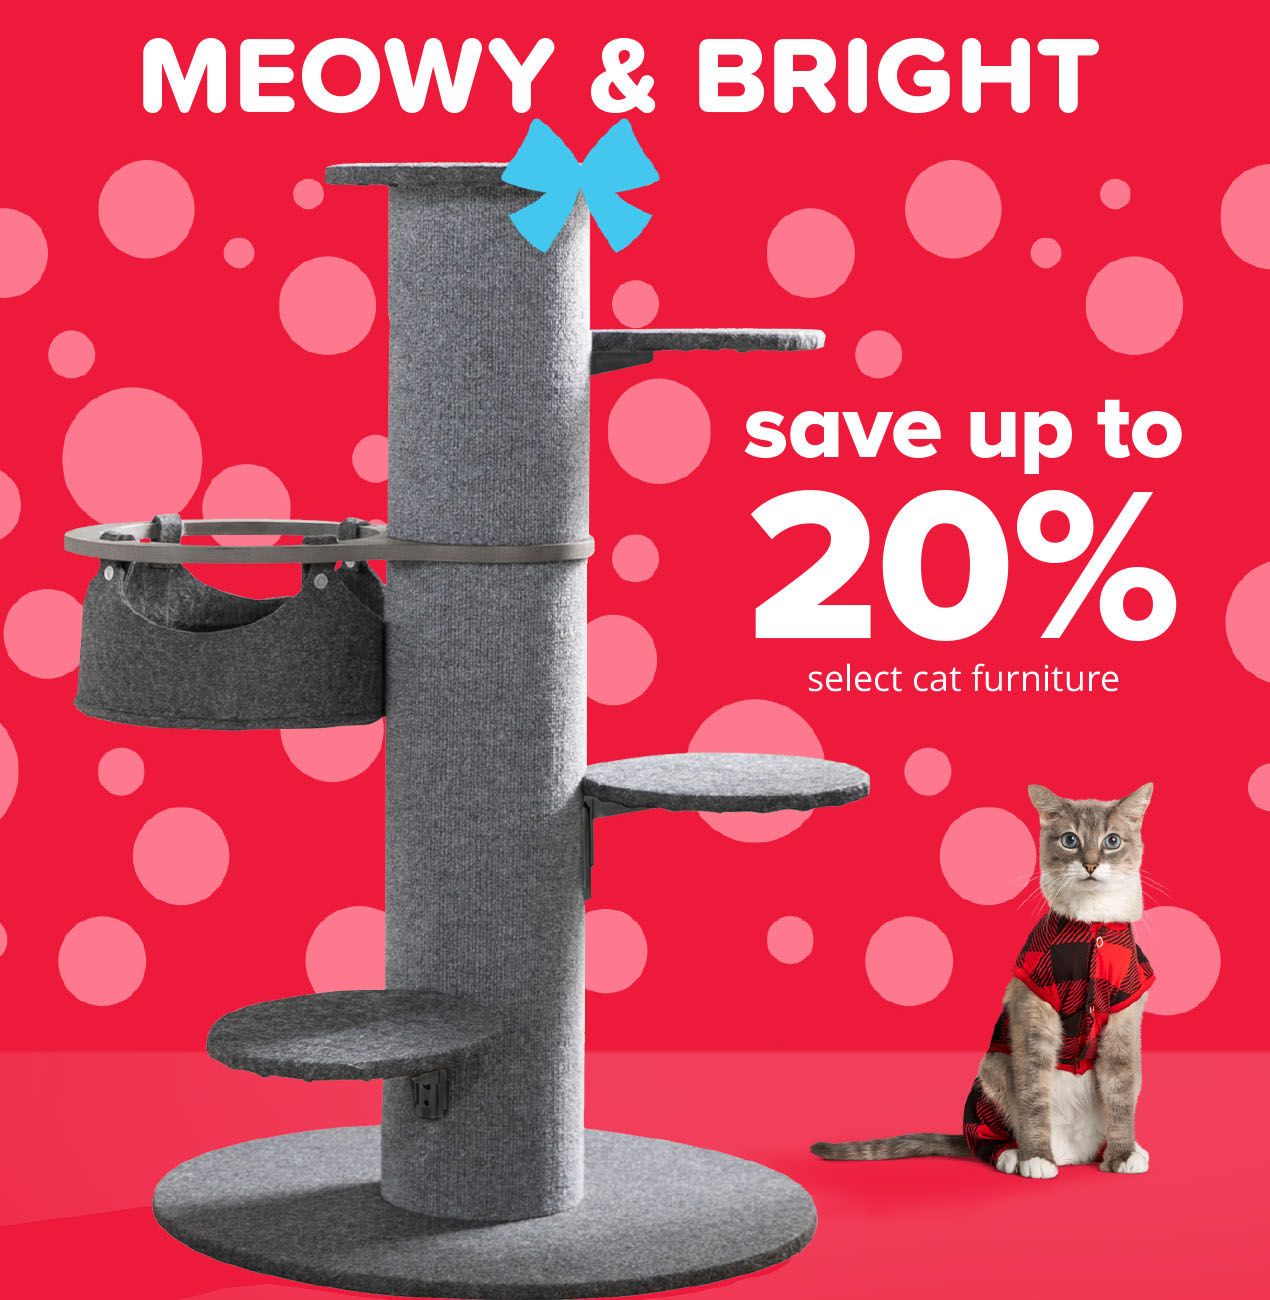 save up to 20% select cat furniture